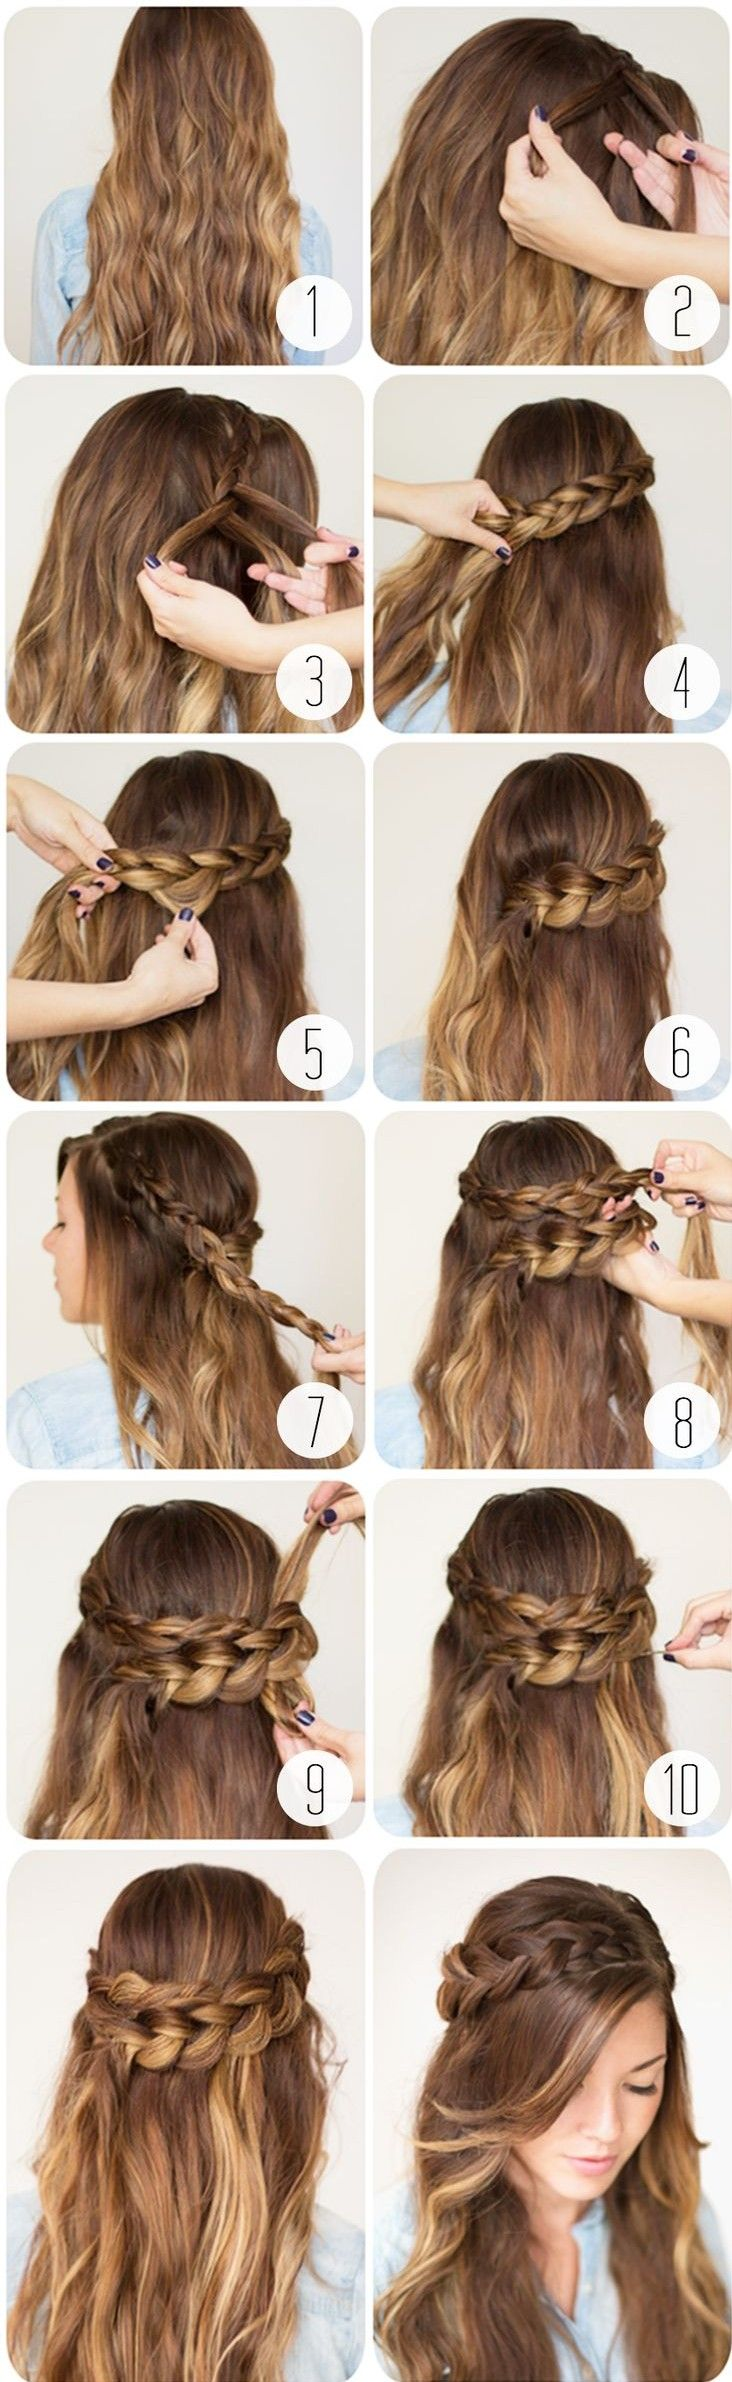 asics online canada How To Wrap Around Braid  hairstyles  braids